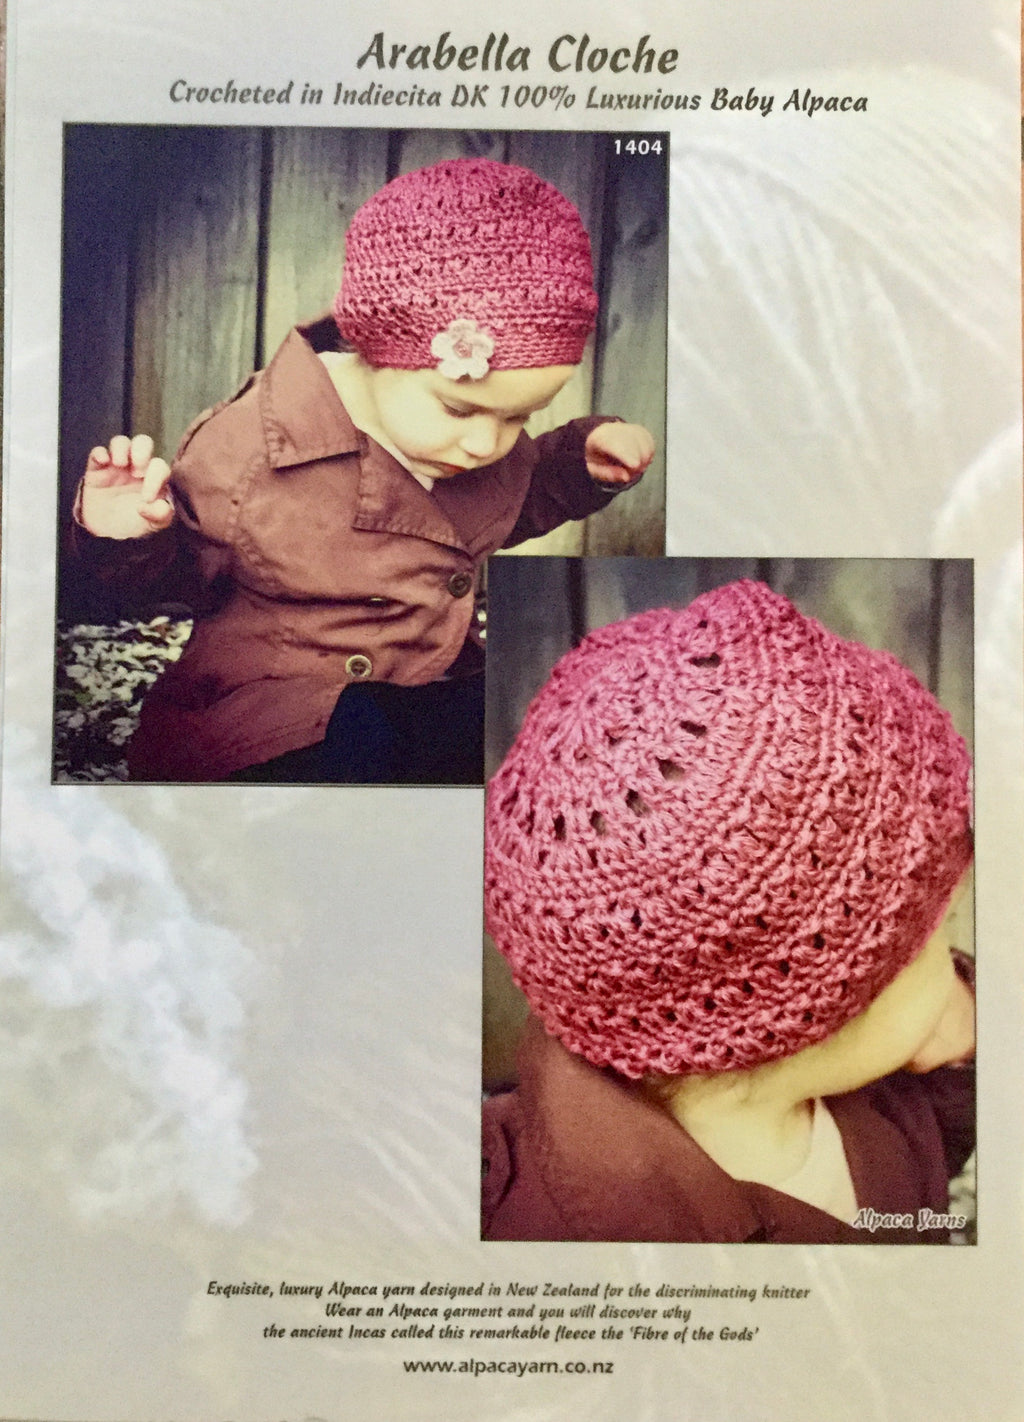 Arabella Cloche Crocheted in Indiecita DK 100% Baby Alpaca - 1404 - The Mulberry Tree at Milton